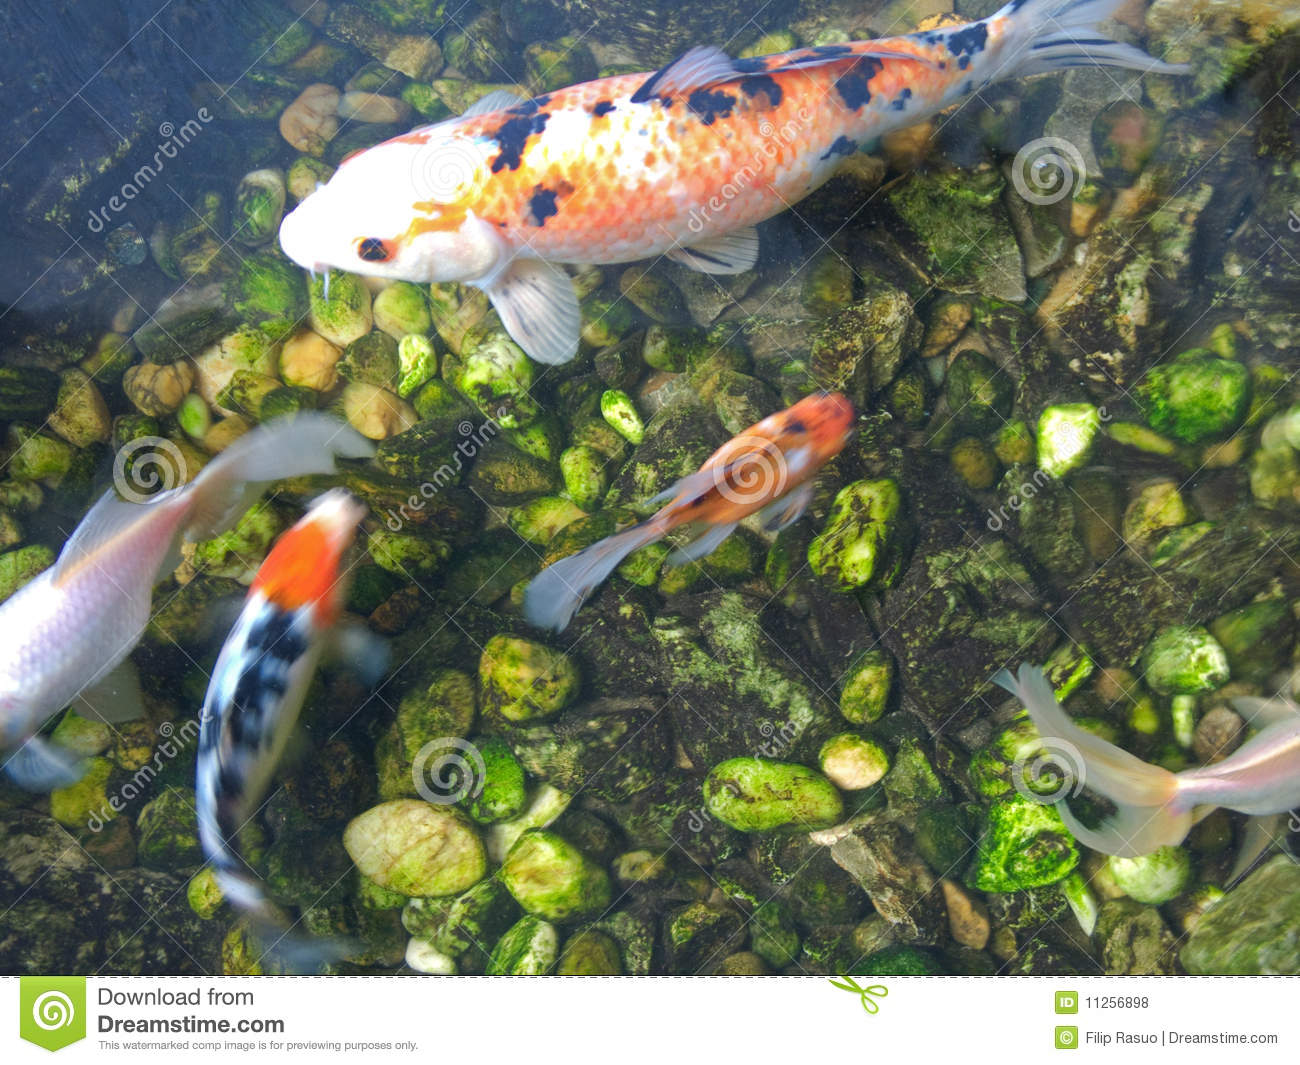 Japanese koi carp fishes royalty free stock photos image for Japanese koi